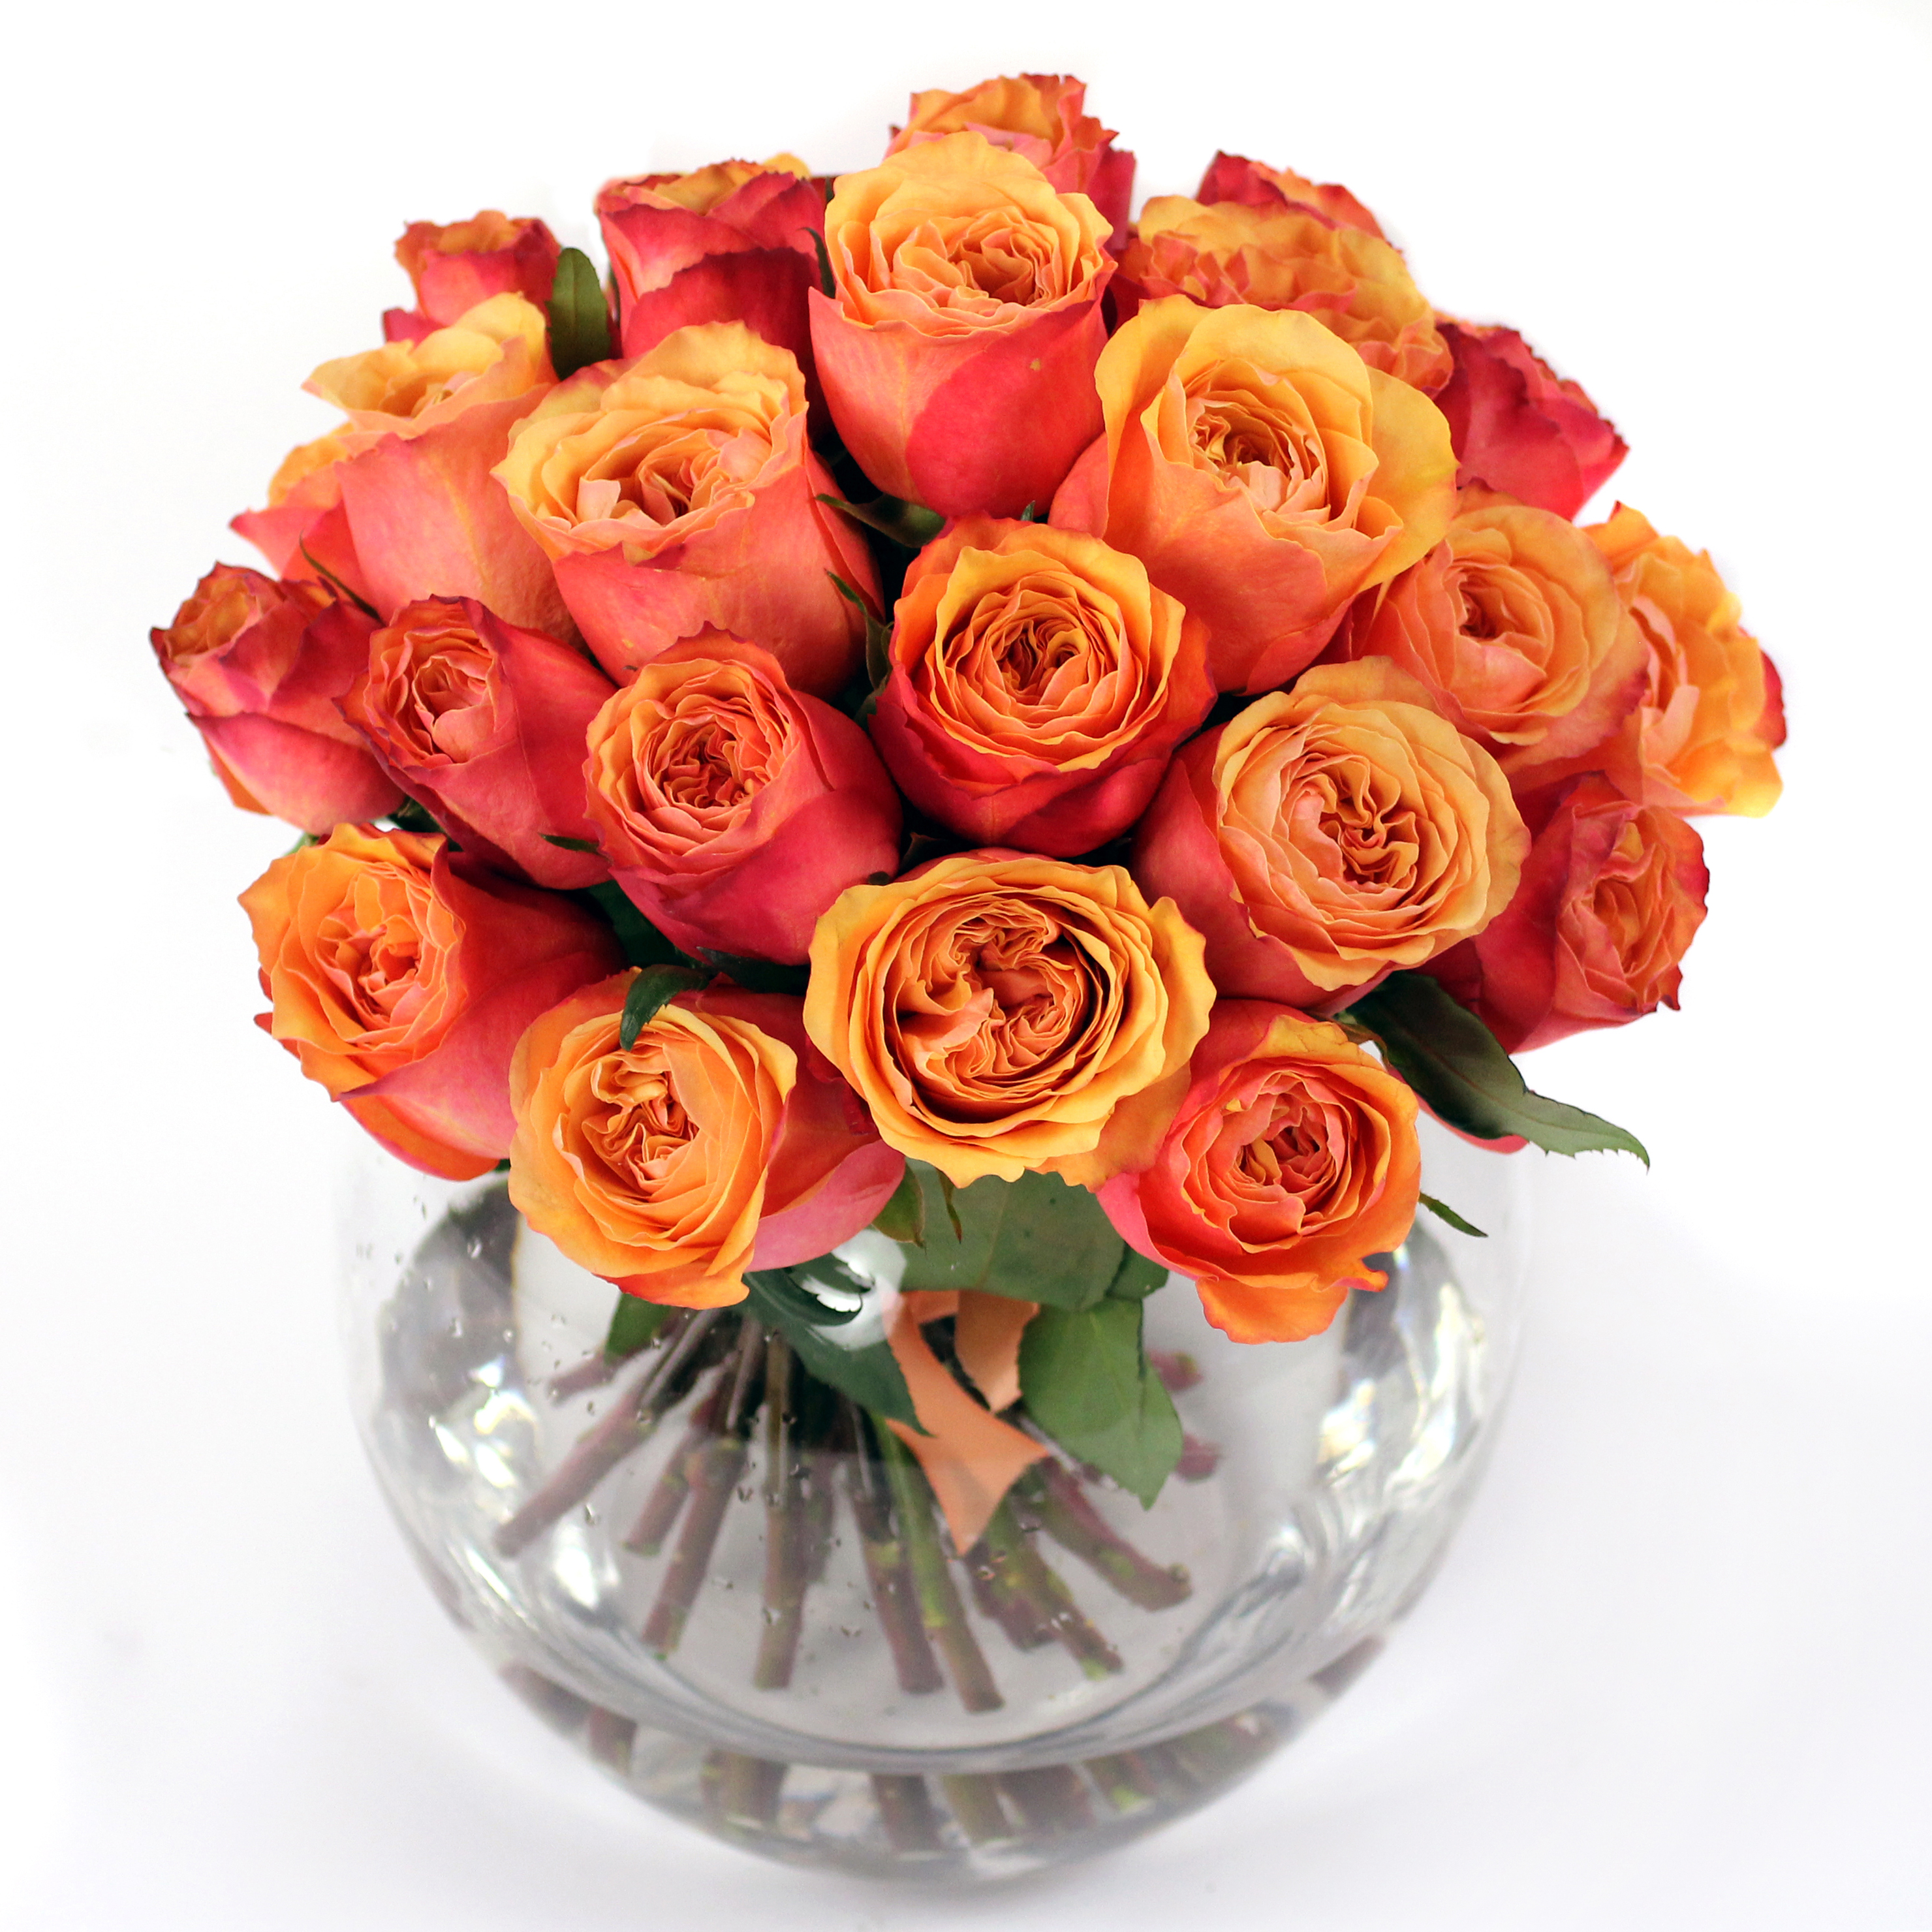 Valentine s day flowers fifty shades of rose for What color is the friendship rose